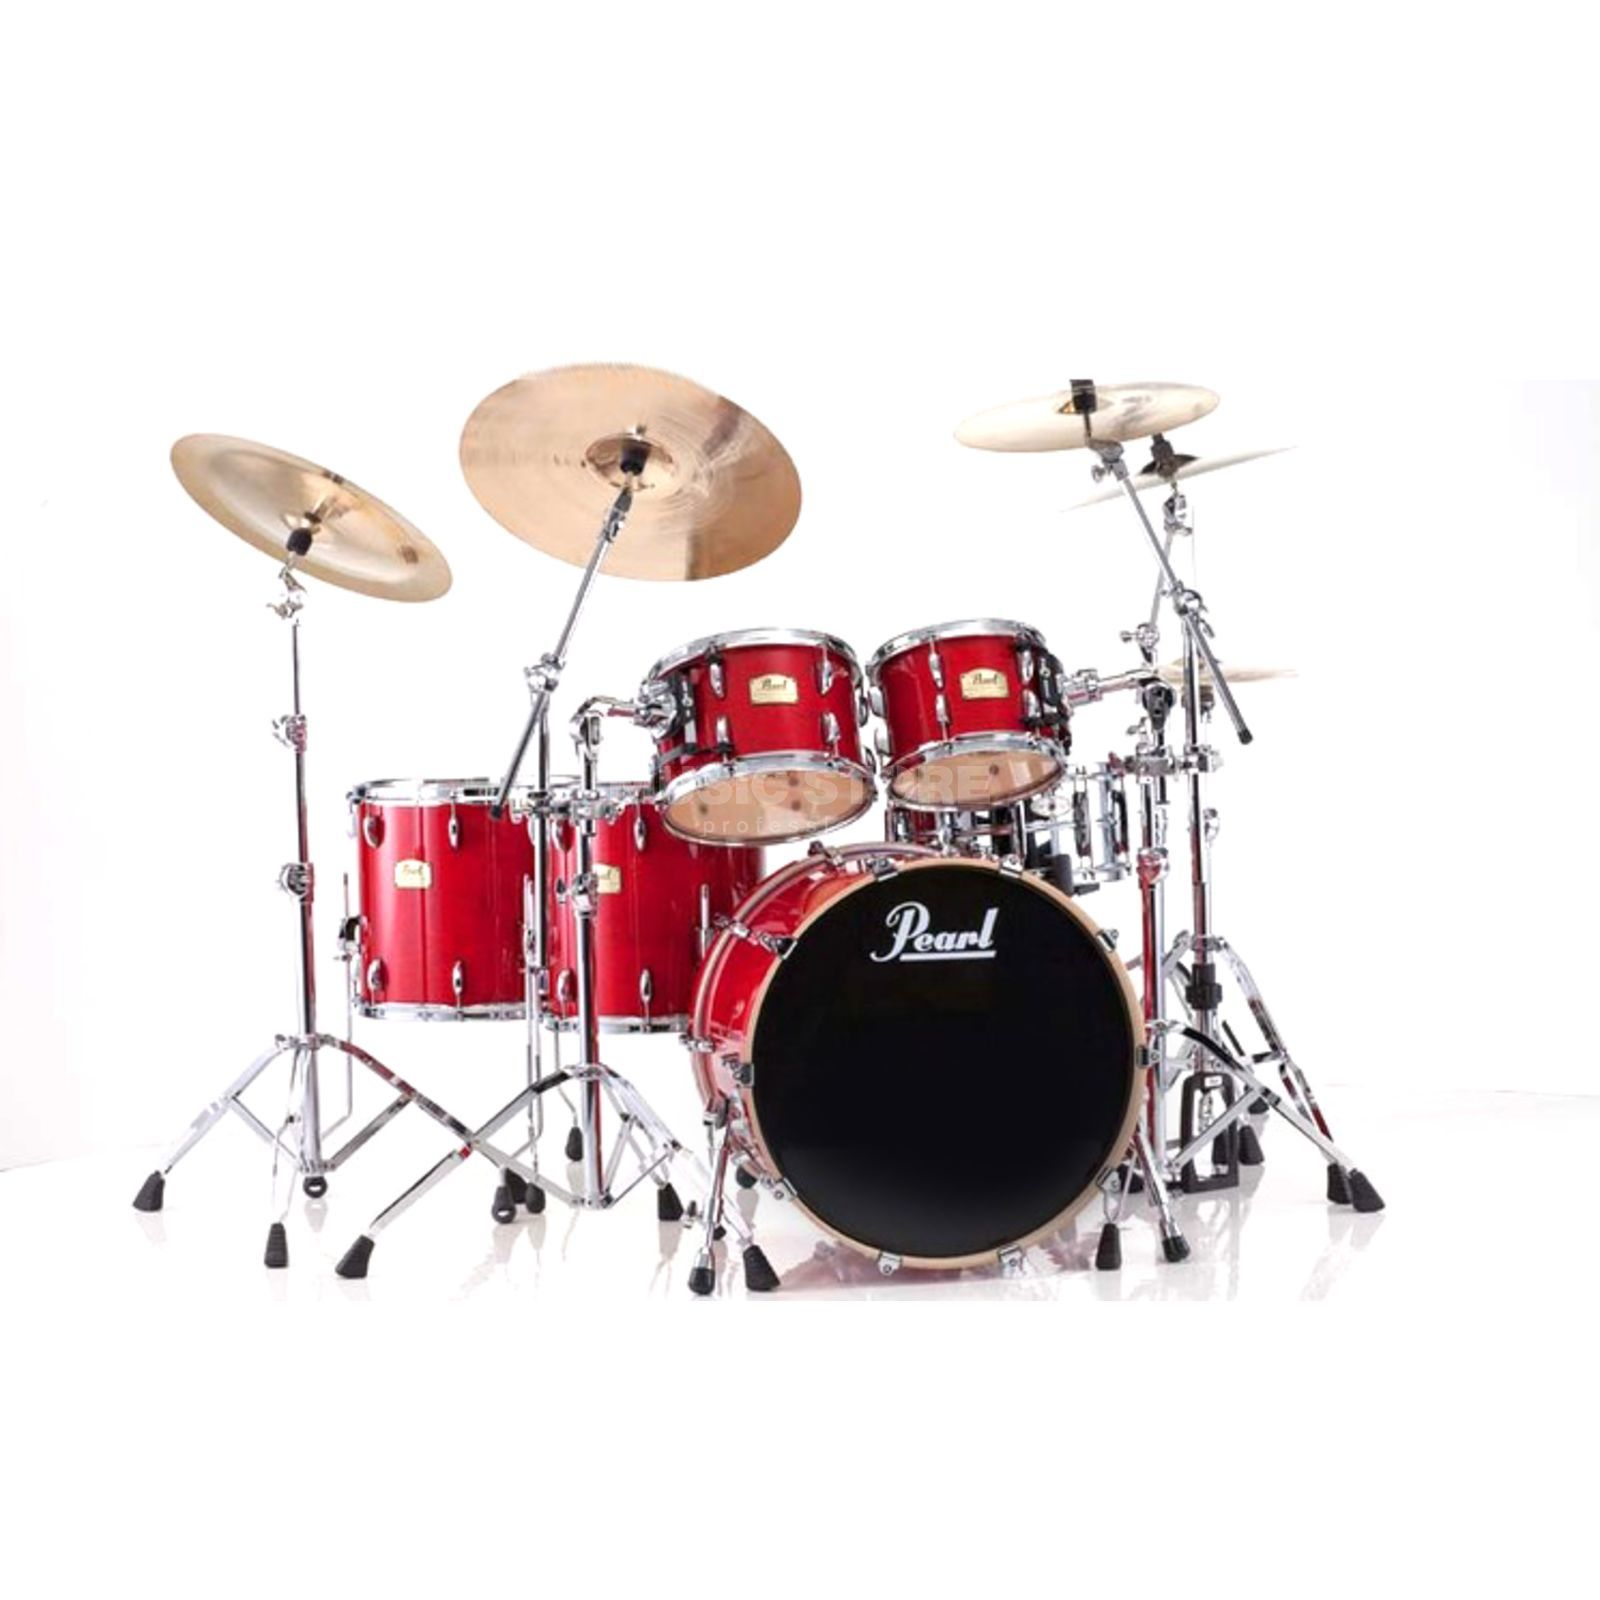 Pearl Session Studio Classic SSC924XUP/C, Sequoia Red Zdjęcie produktu